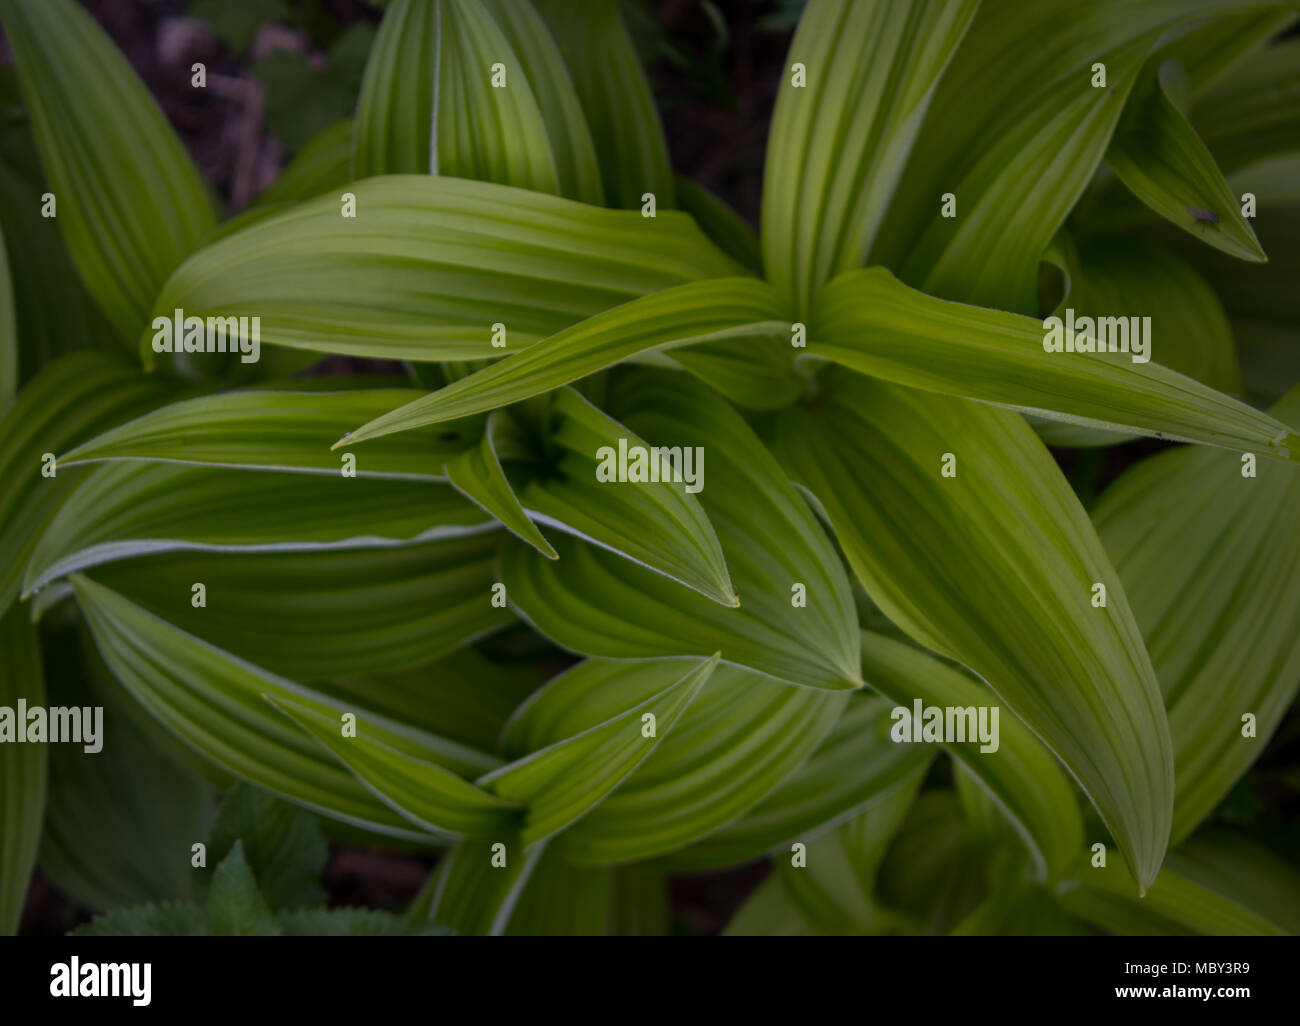 Looking Down on Green Leaves abstract nature image - Stock Image